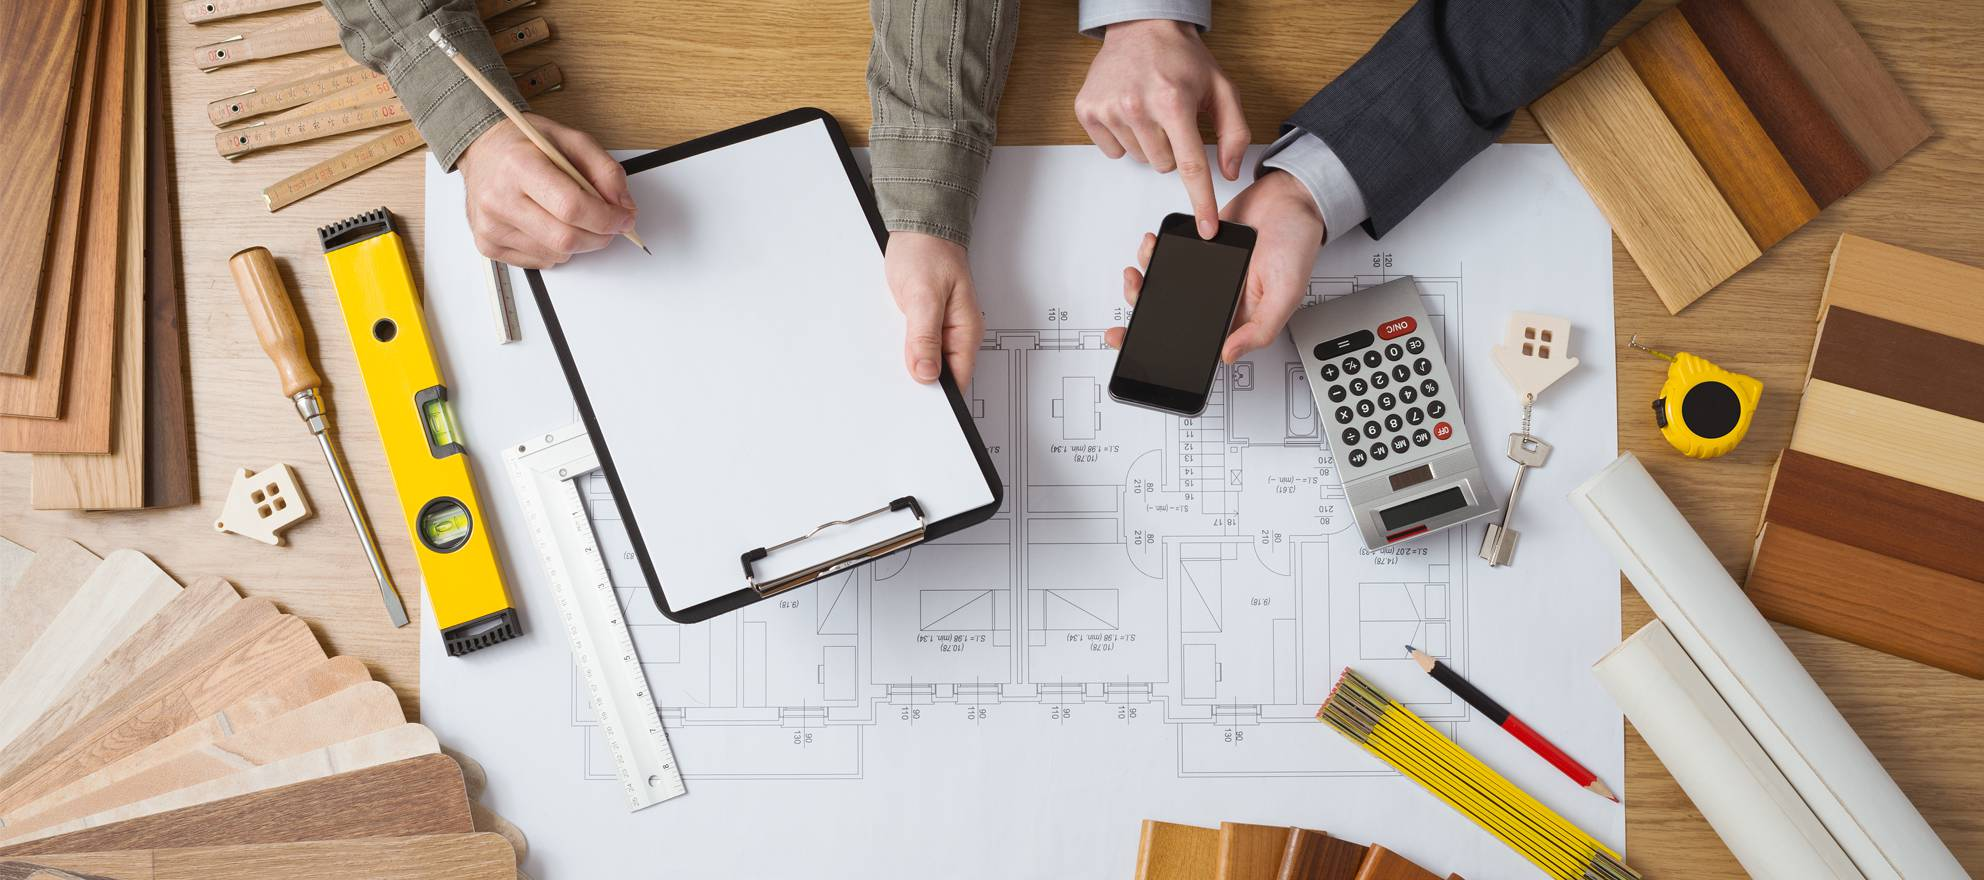 BuildFax: New residential permit activity up, remodeling down